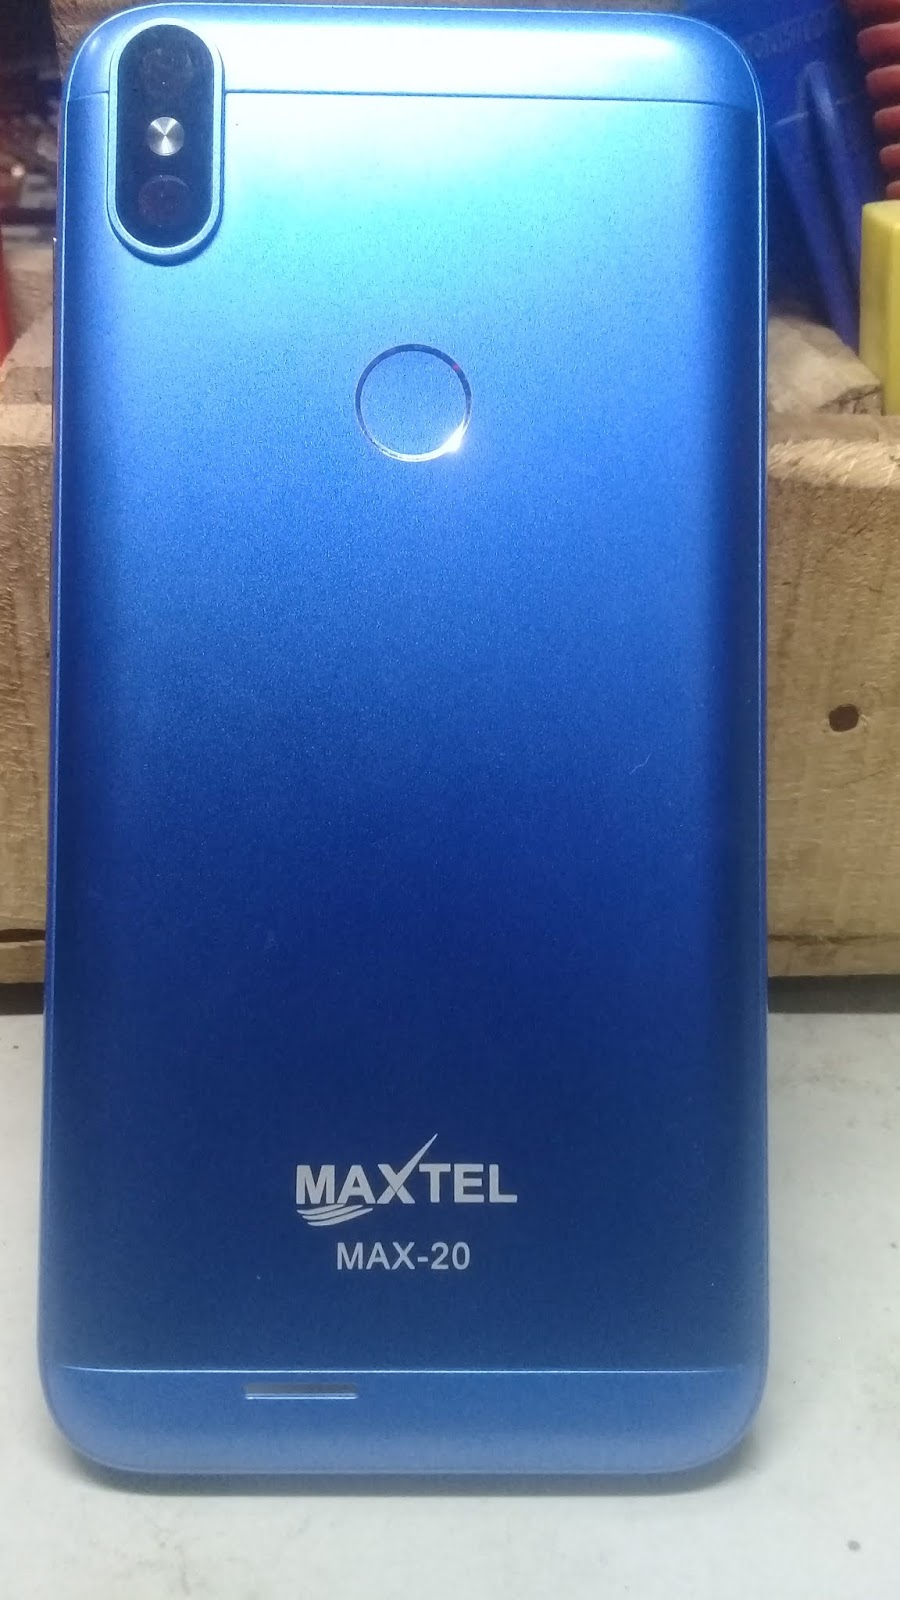 Maxtel Max 20 Price in Bangladesh |Maxte Max 20 Full specification